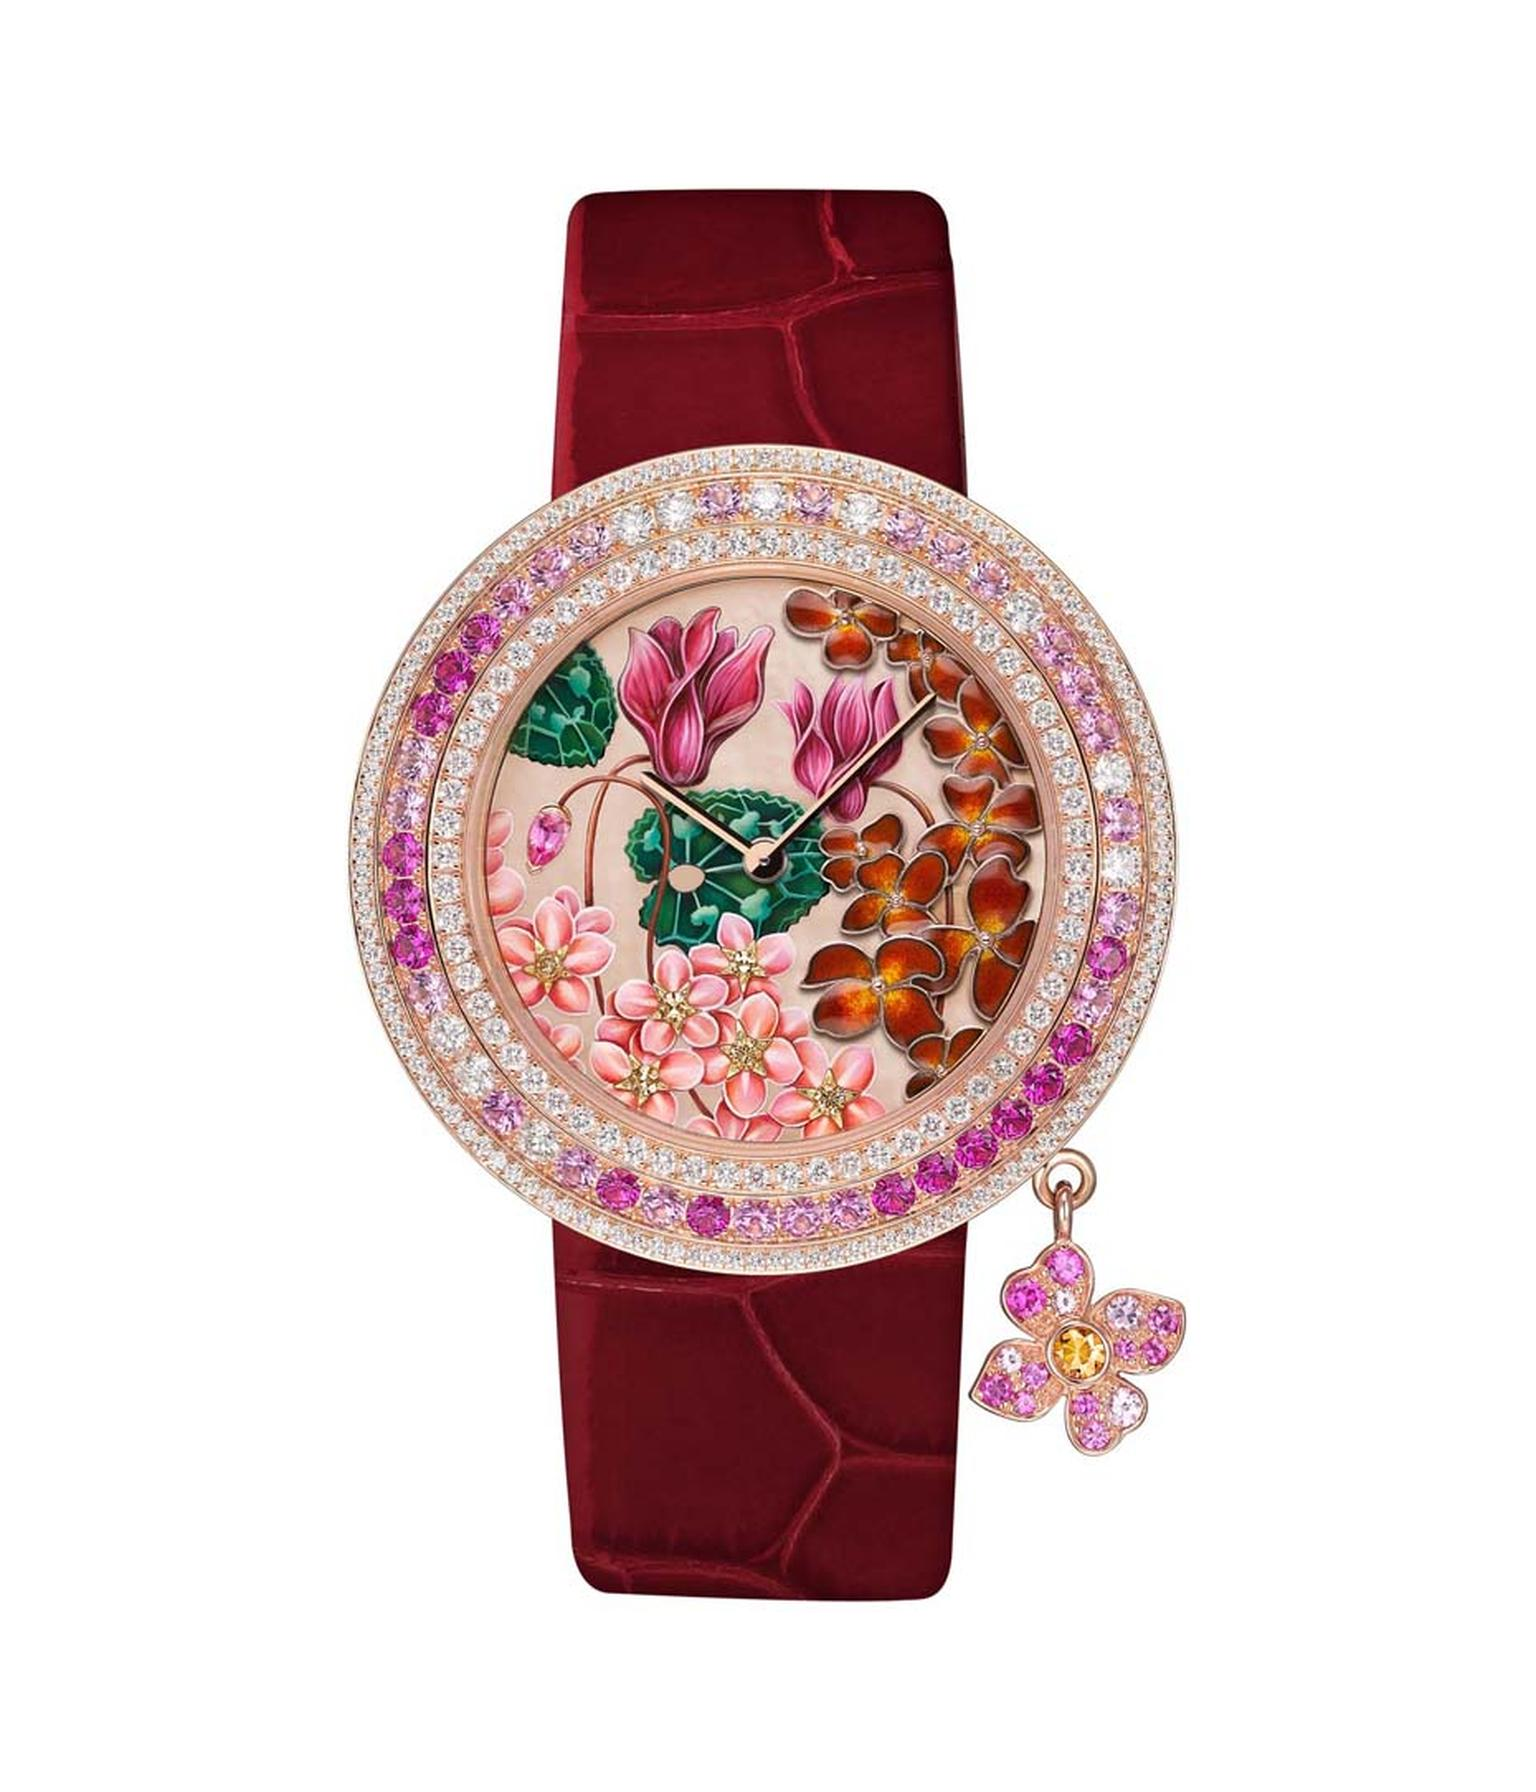 Van Cleef & Arpels Amour watch, from the Charms collection, is decorated with cyclamens, wallflowers and forget-me-nots, and is said to symbolise memory, beauty and lasting sentiments - a most appropriate message for Mother's Day.